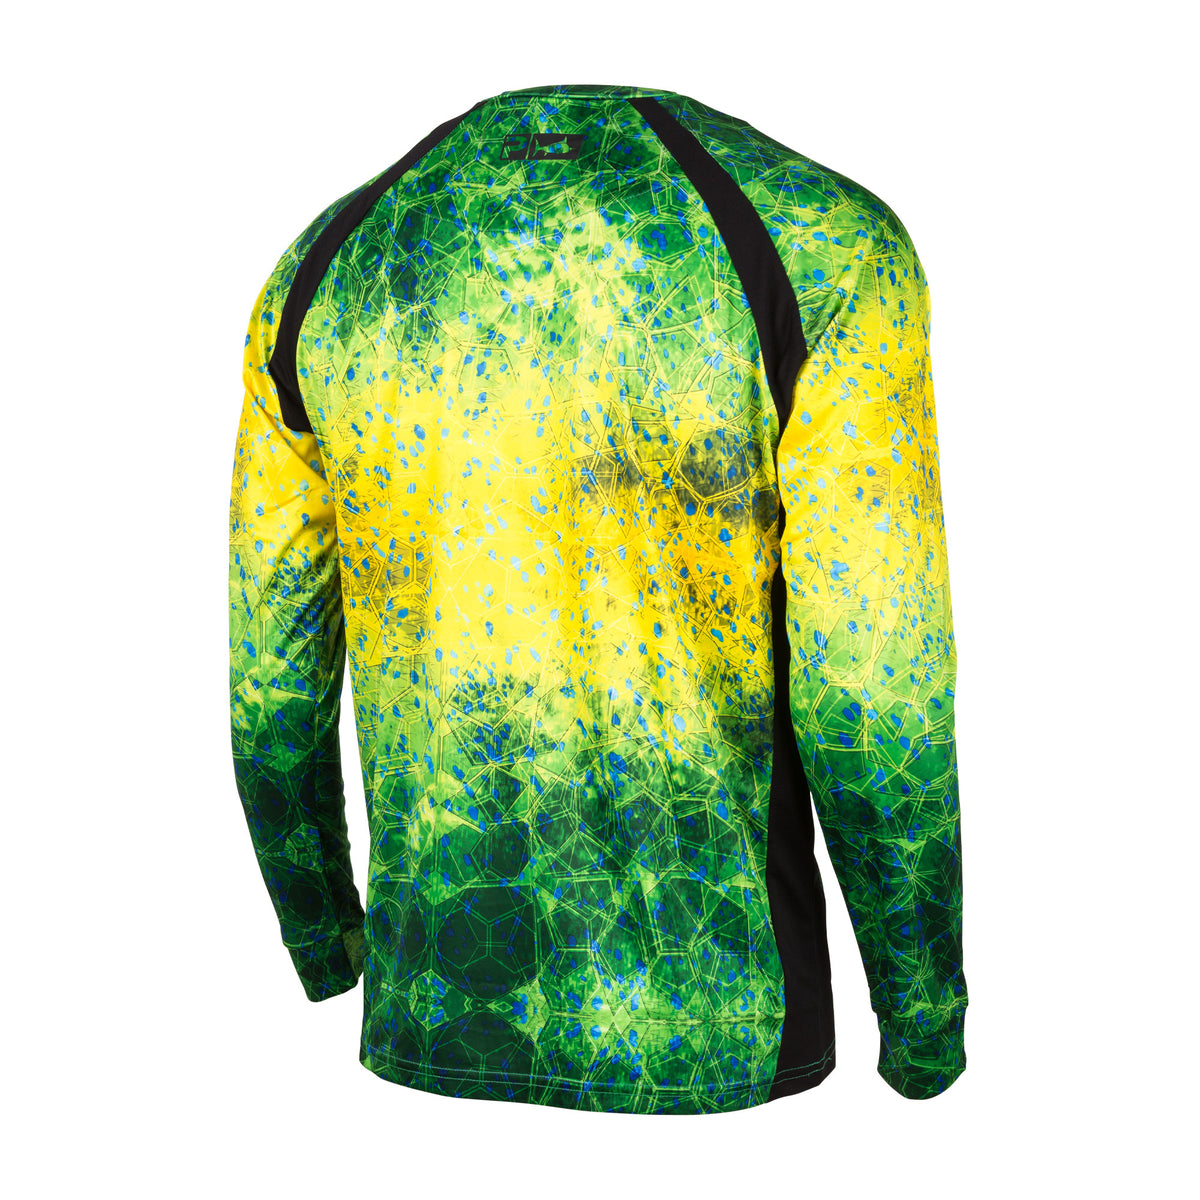 Vaportek Long Sleeve Performance Shirt Big Image - 2